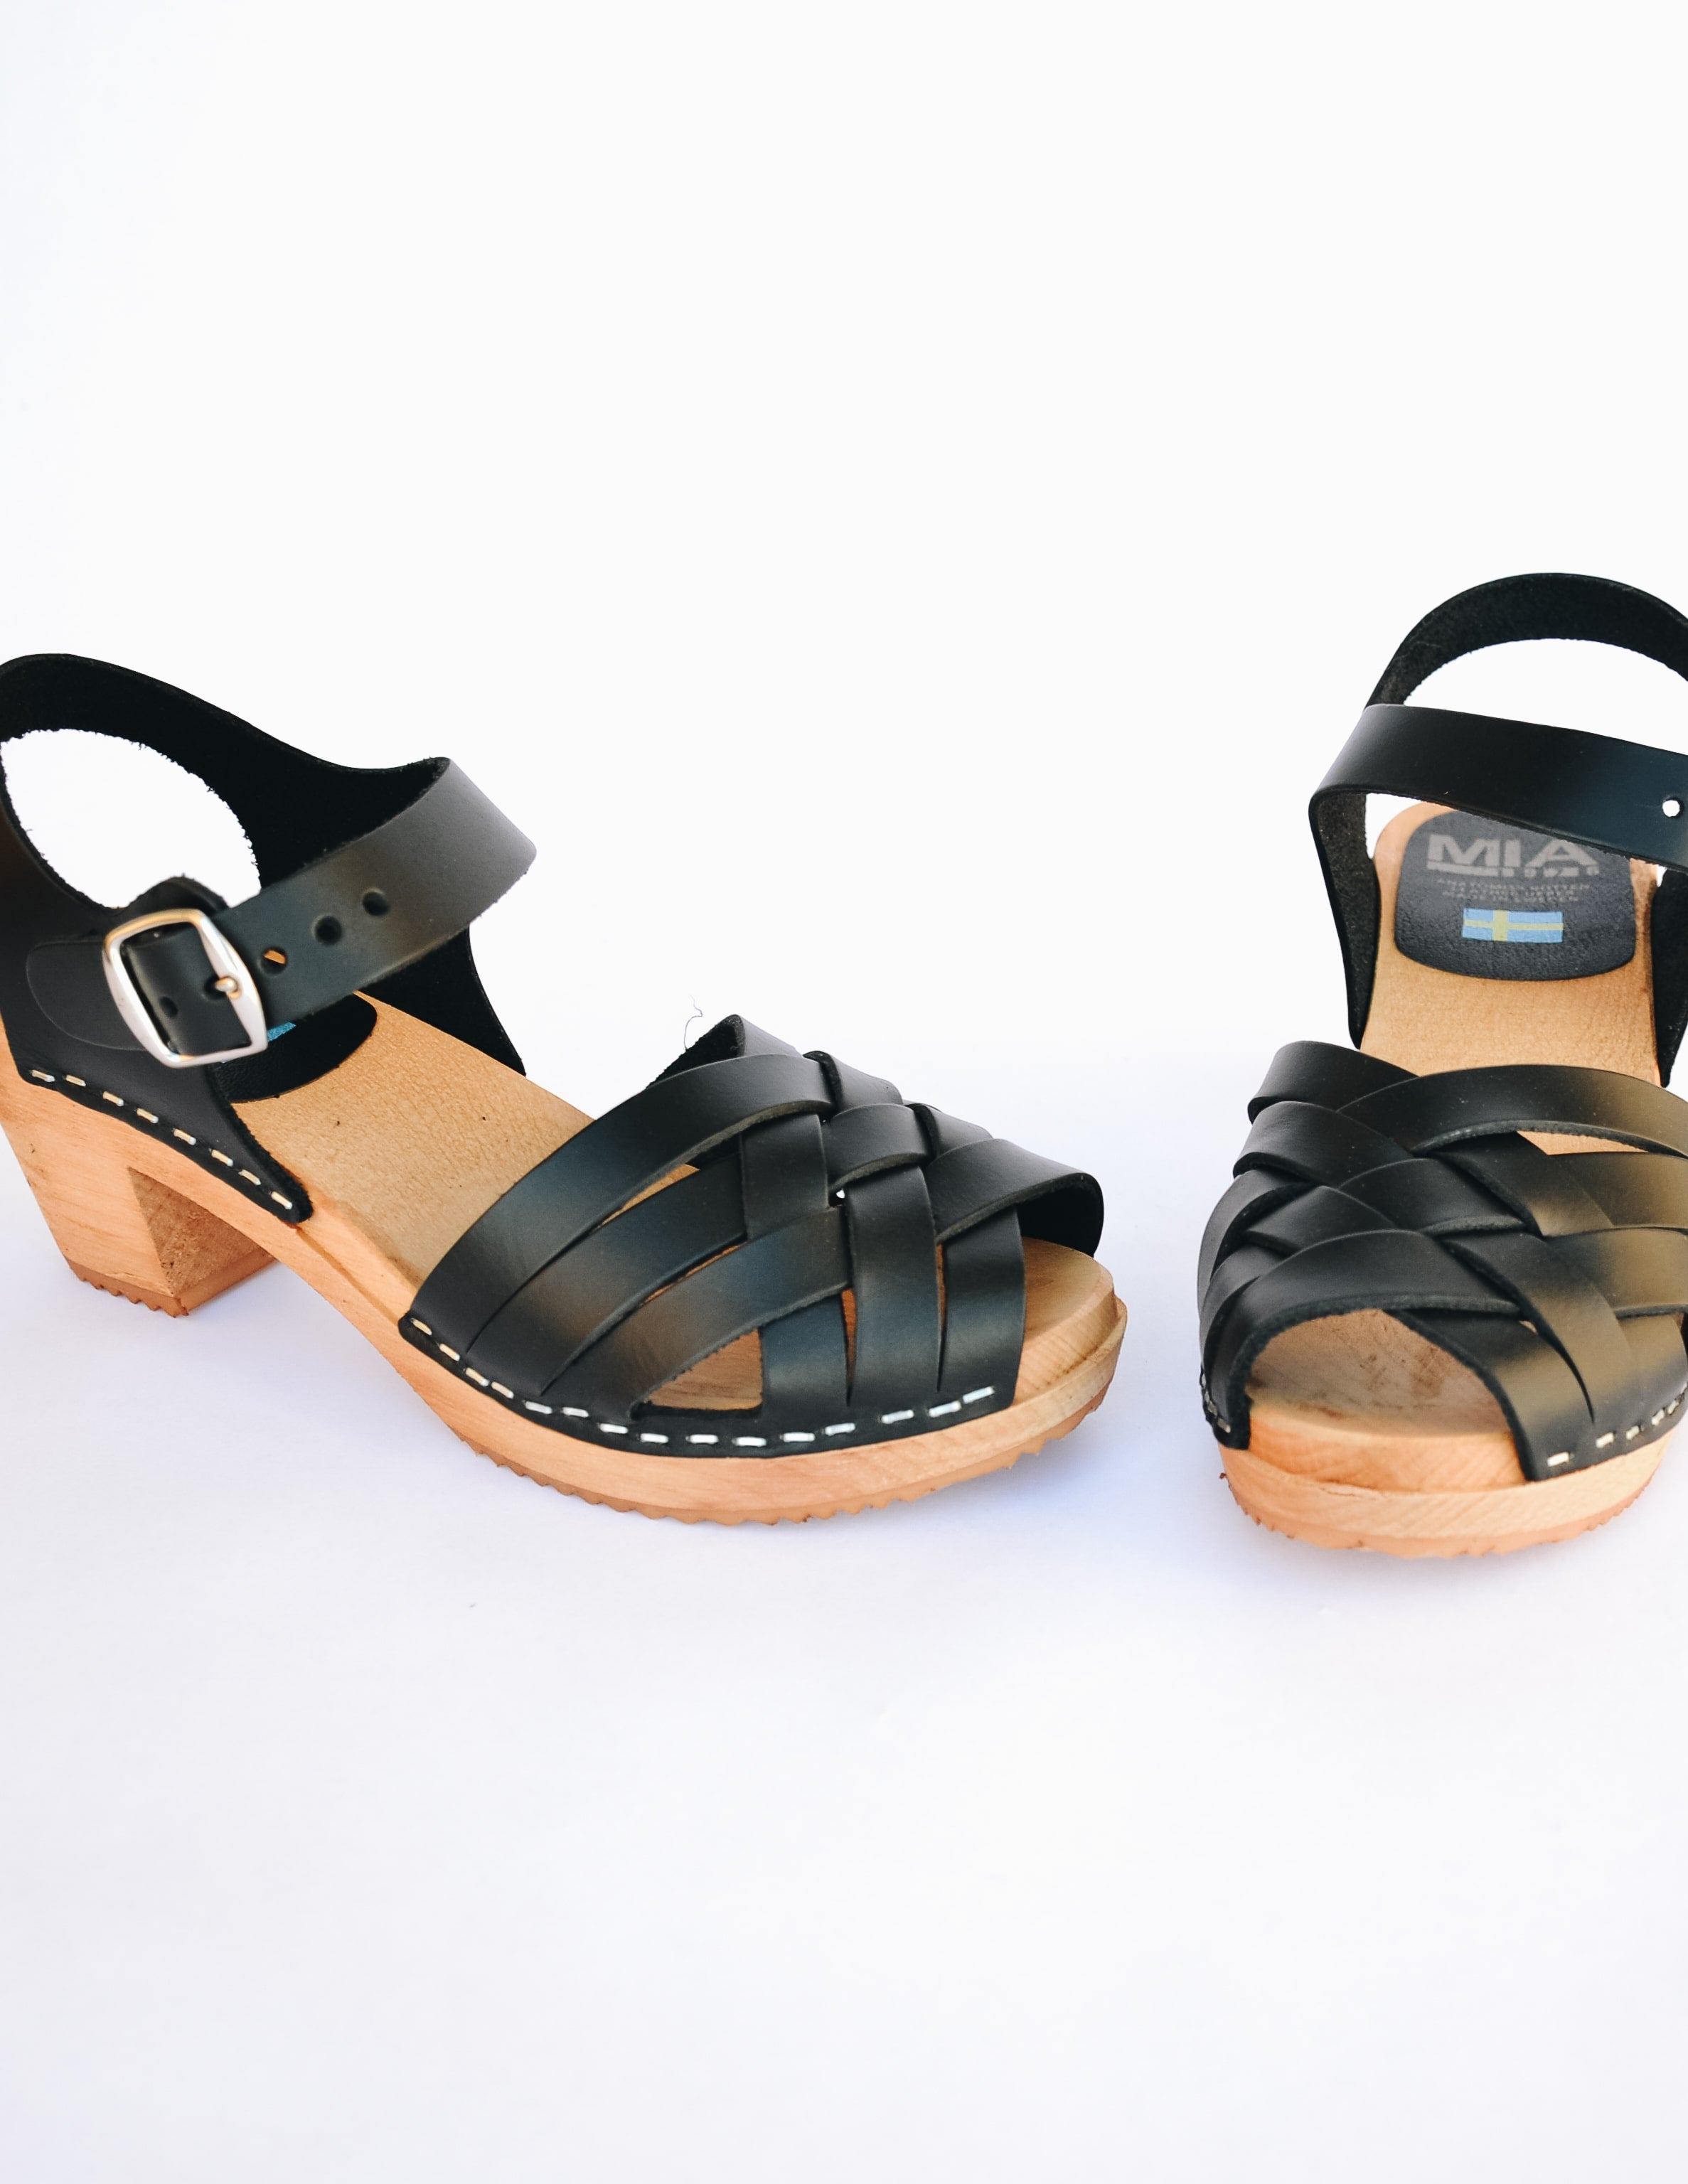 MIA black bety clog with tan wood sole and black leather upper